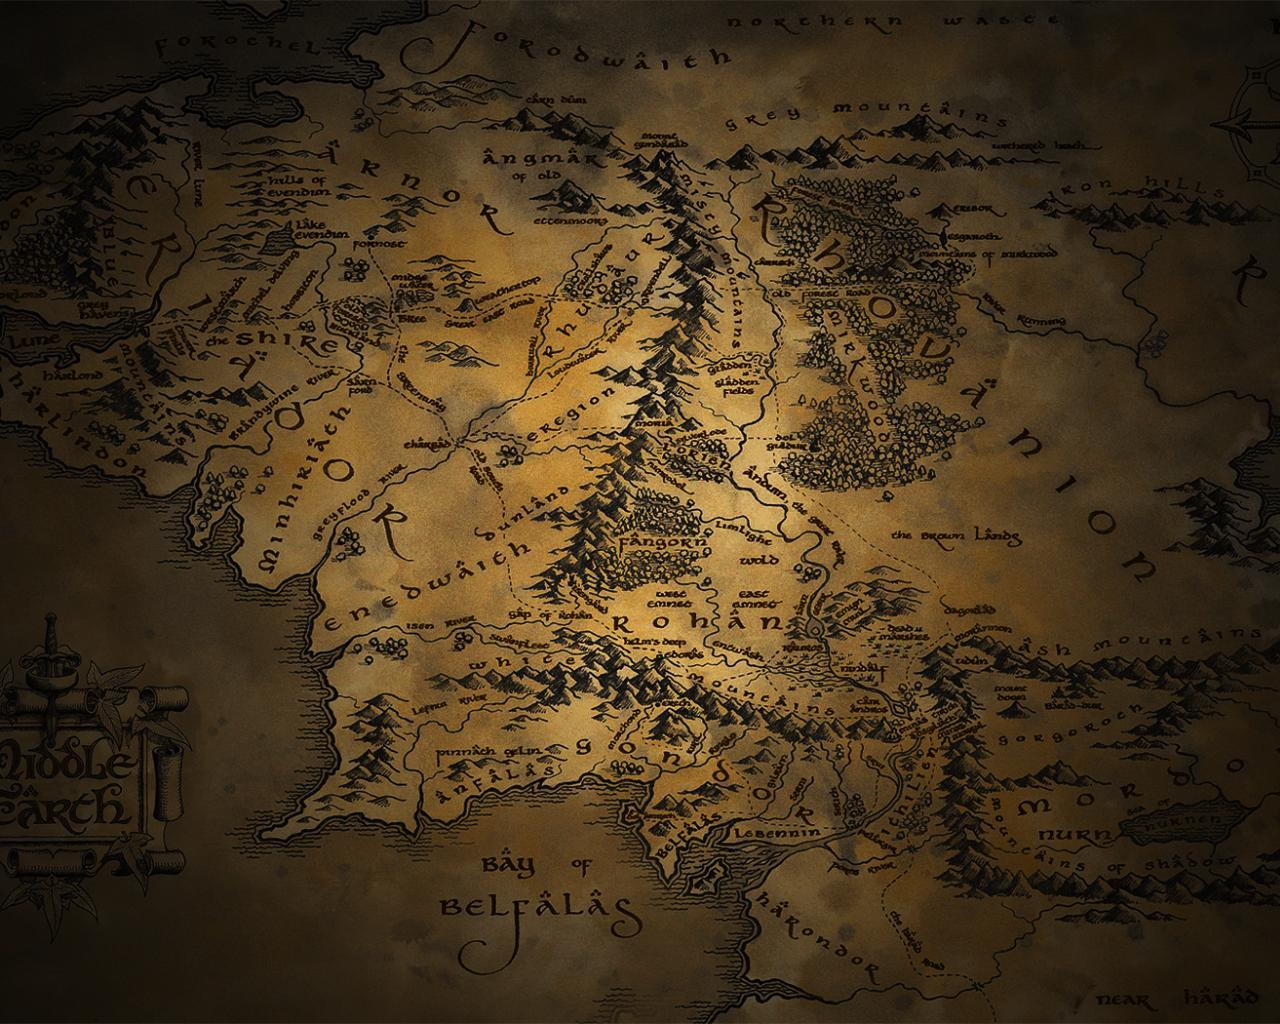 the lord of rings maps middle earth QFjr 1280x1024